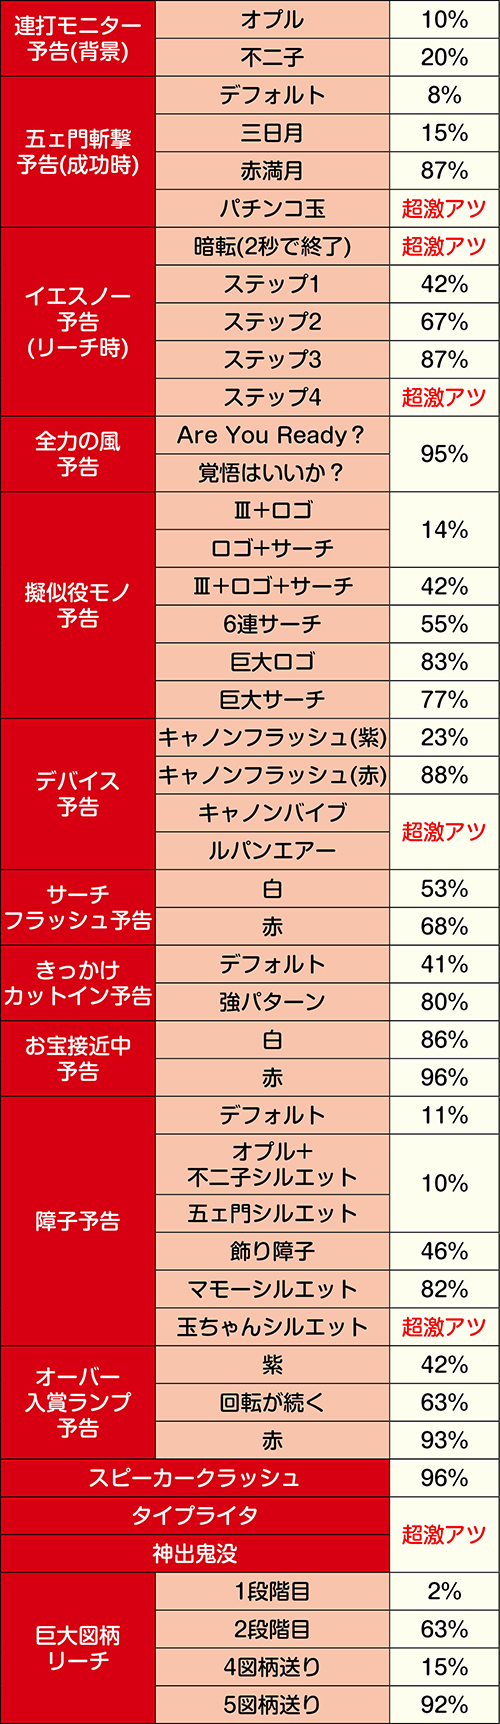 LUPIN THE SHOW TIME中の予告信頼度②